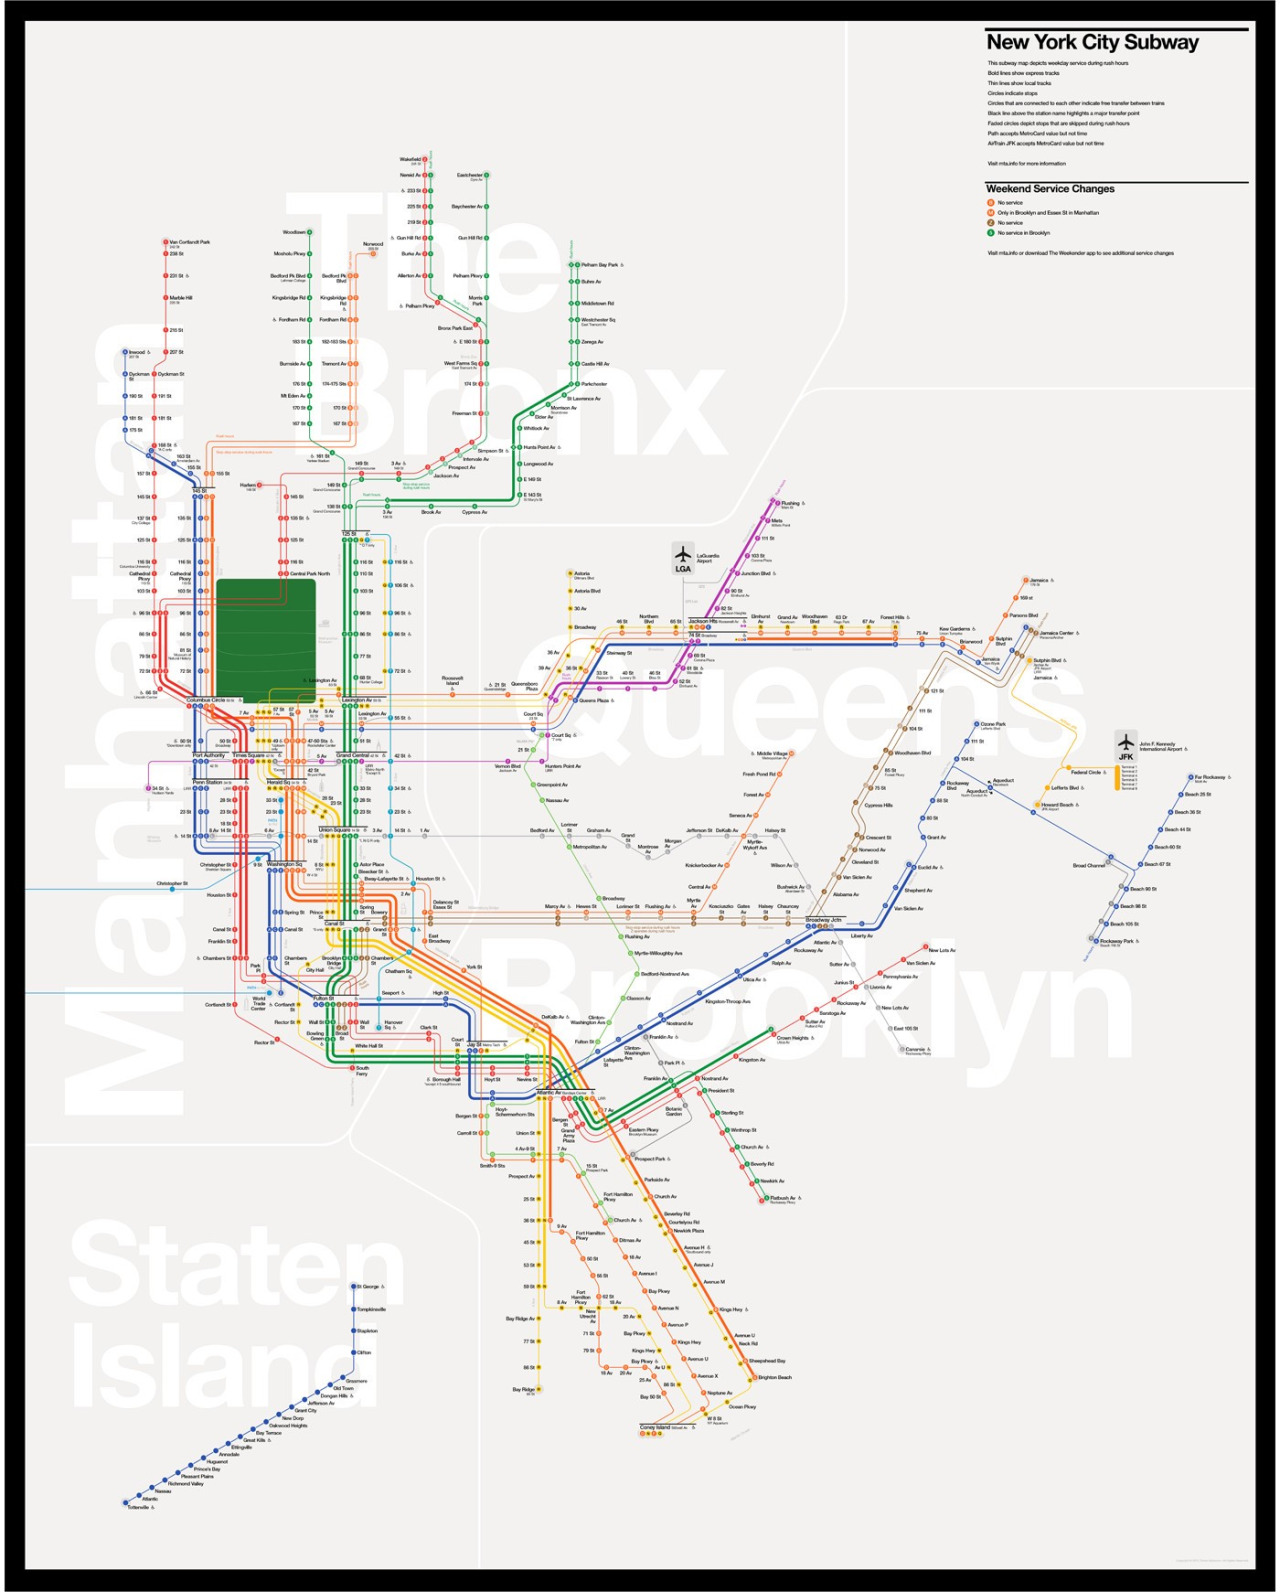 subway map mta with Plan Metro New York Simple on Nyc Subway Map 2010 together with Mtarta Ceo Explains Nmotion 2016 Plan For Mass Transit Through 2040 additionally 5 Creepy New York City Subway Stories in addition Plan Metro New York Simple as well 786532.